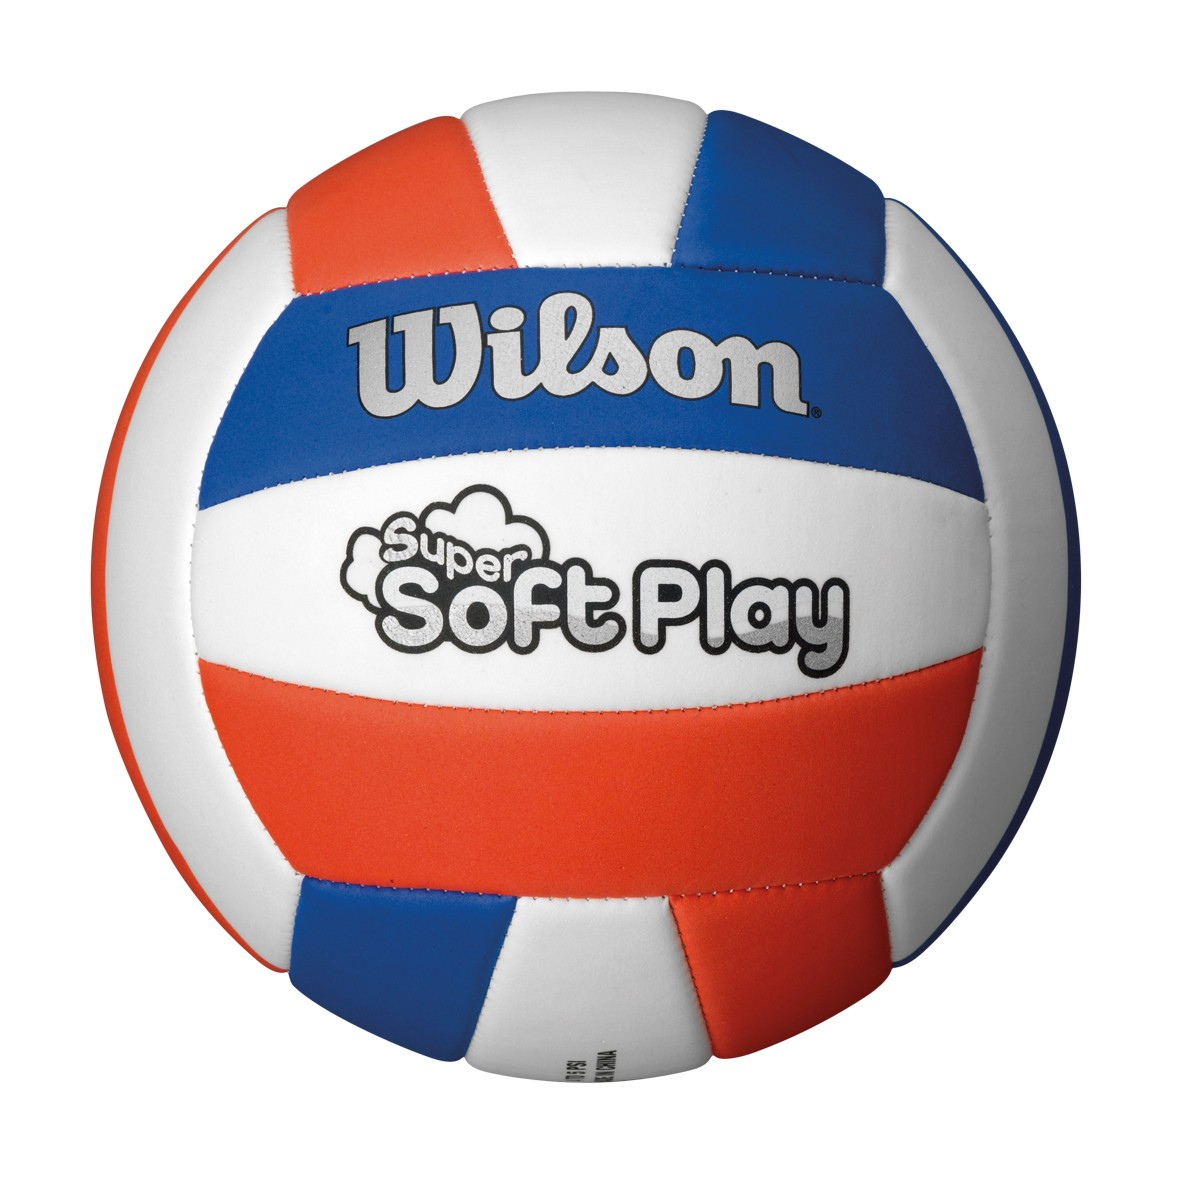 1200x1200 Super Soft Play Volleyball Wilson Sporting Goods